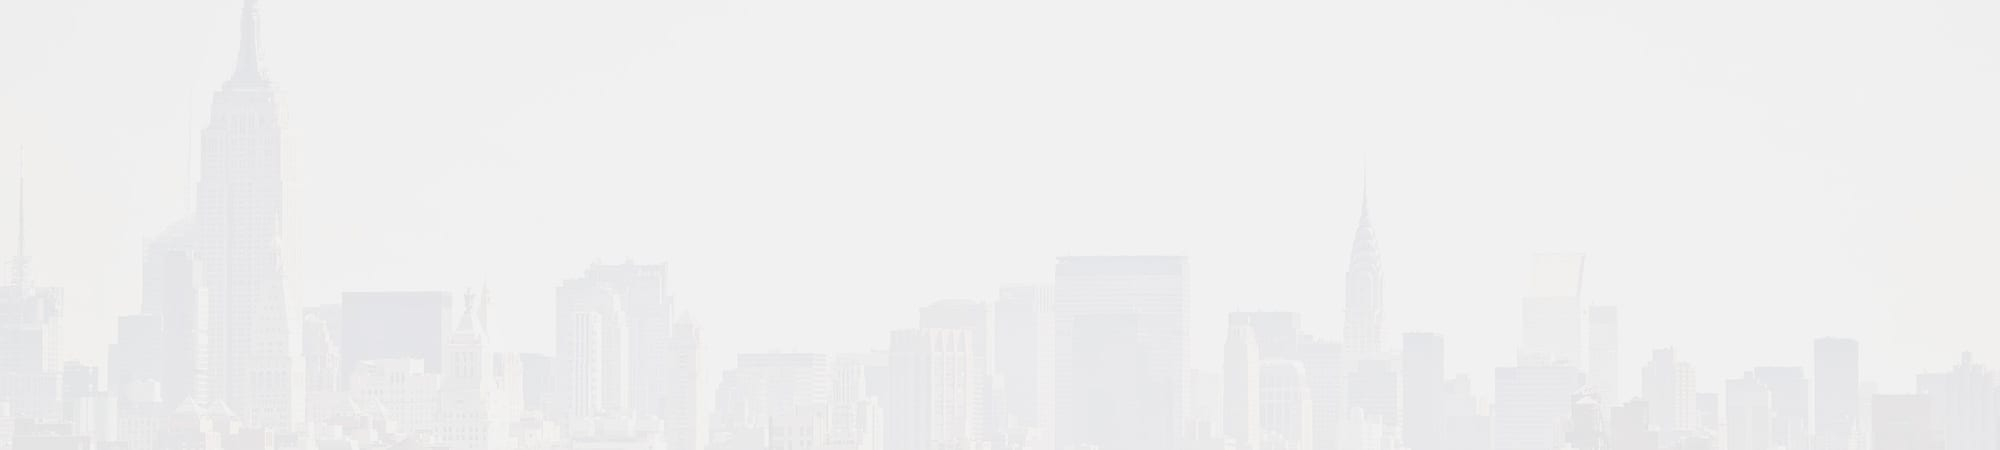 buildings design background for industrial marketing footer